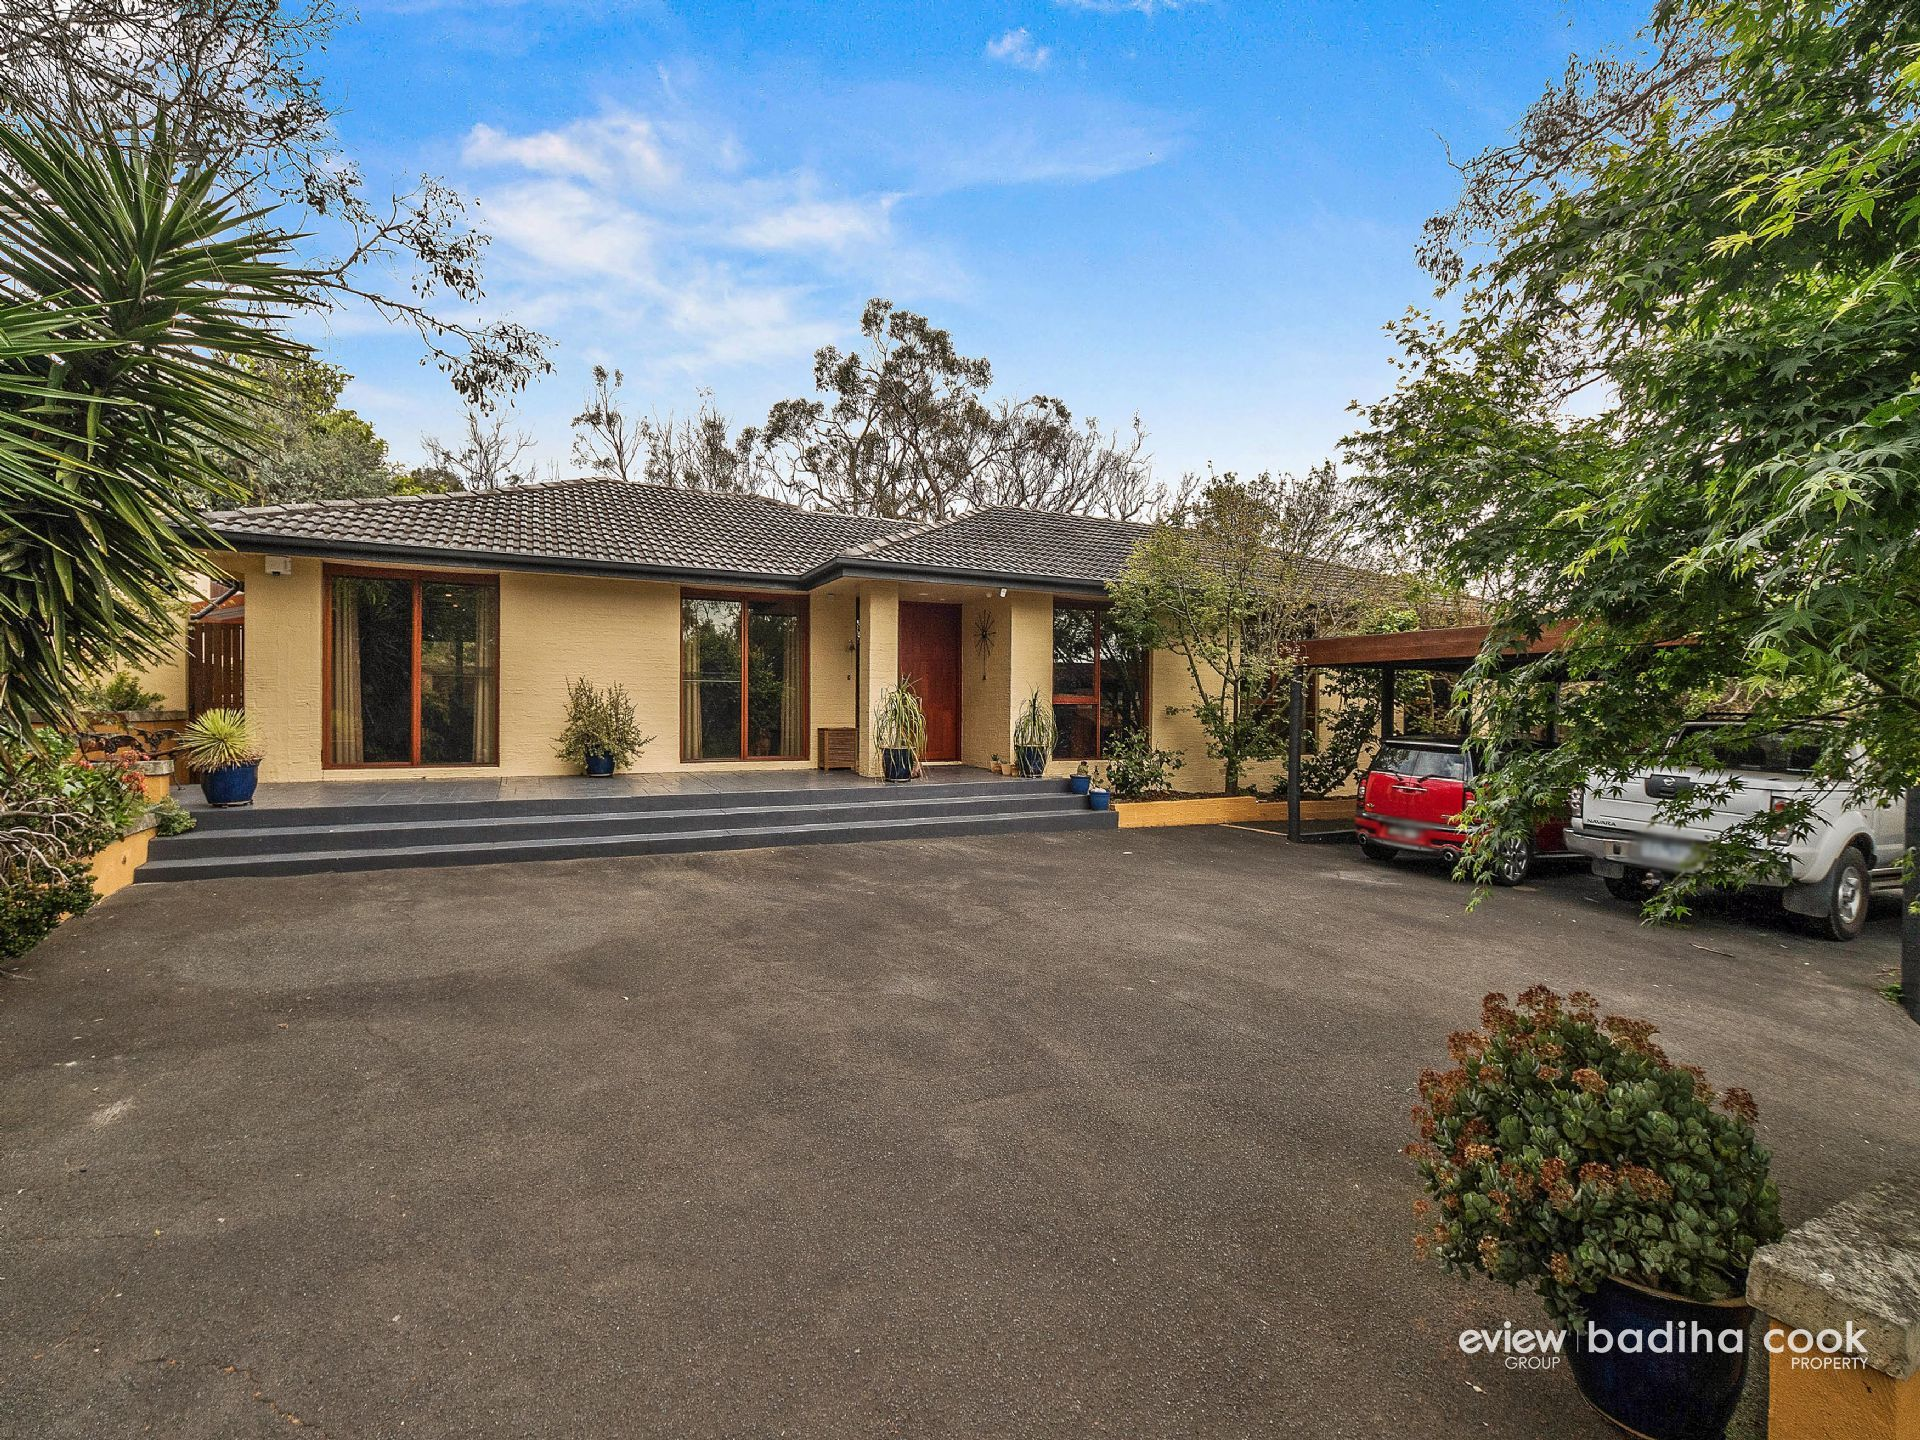 56 Mather Road, MOUNT ELIZA, VIC, 3930 - Image